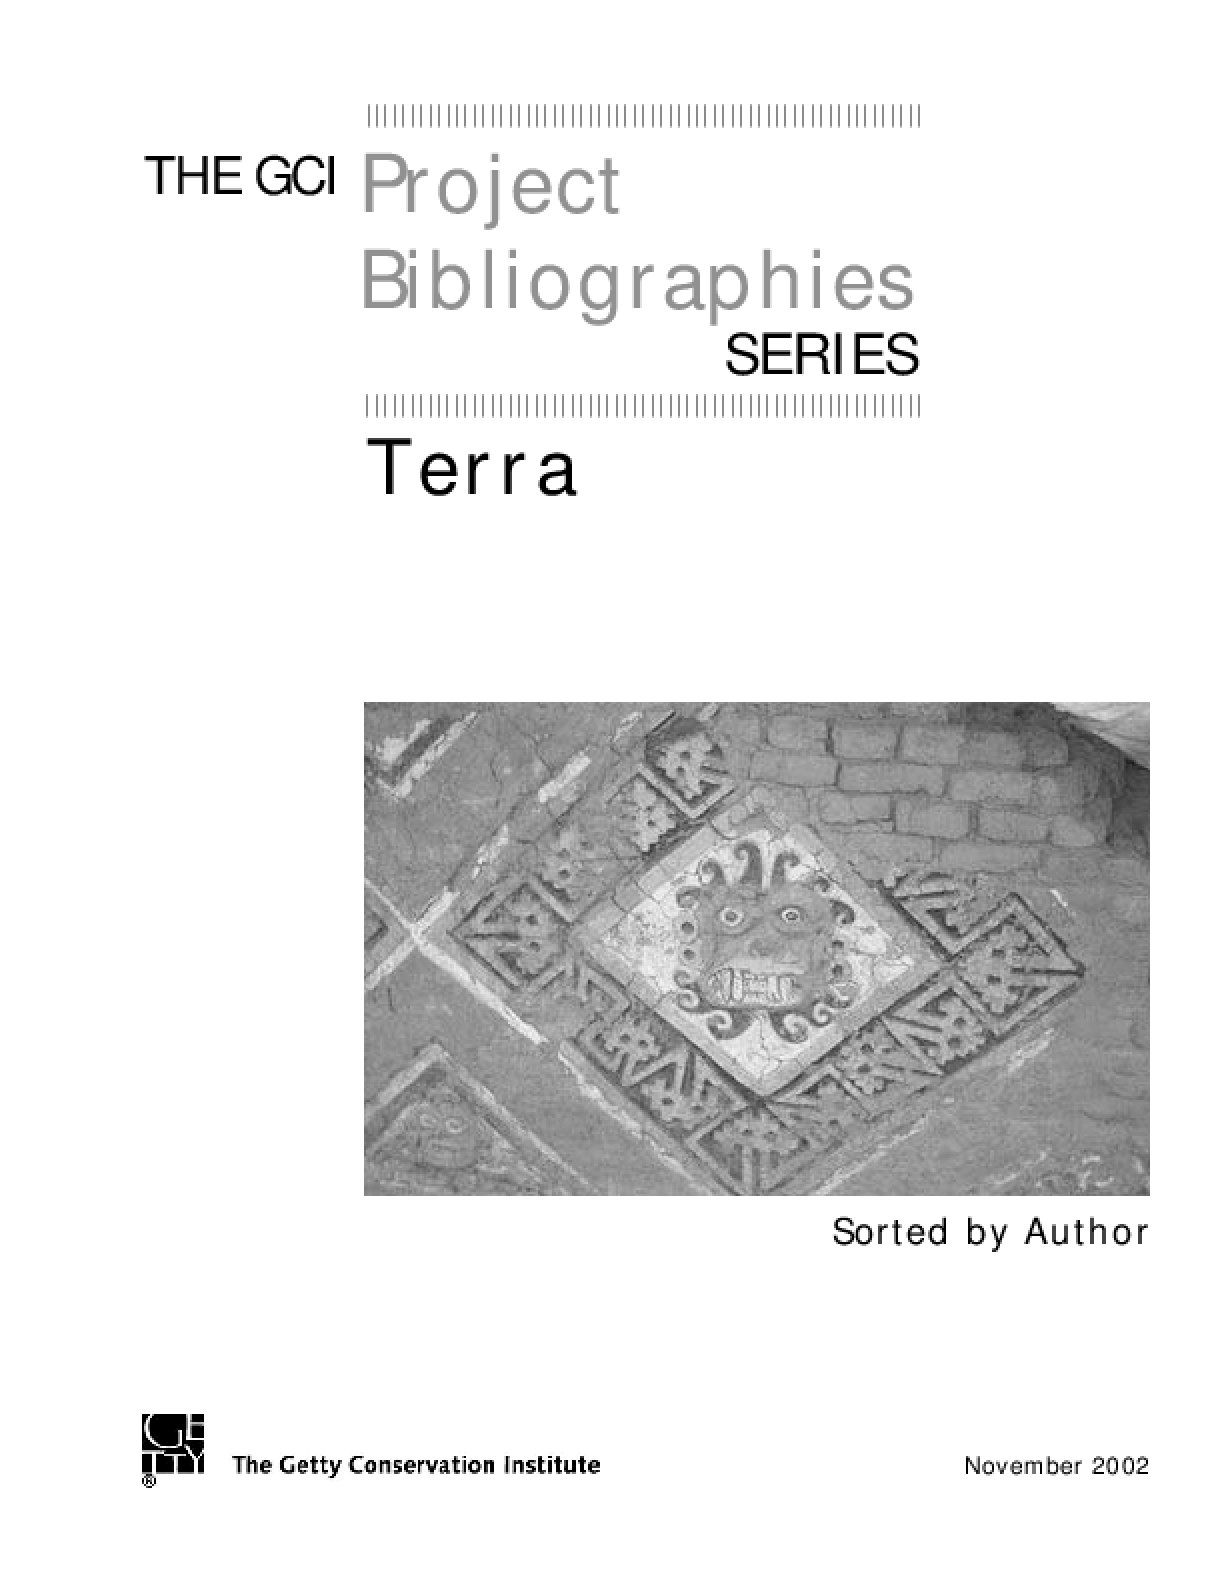 GCI Project Terra Bibliography (Sorted by Author)